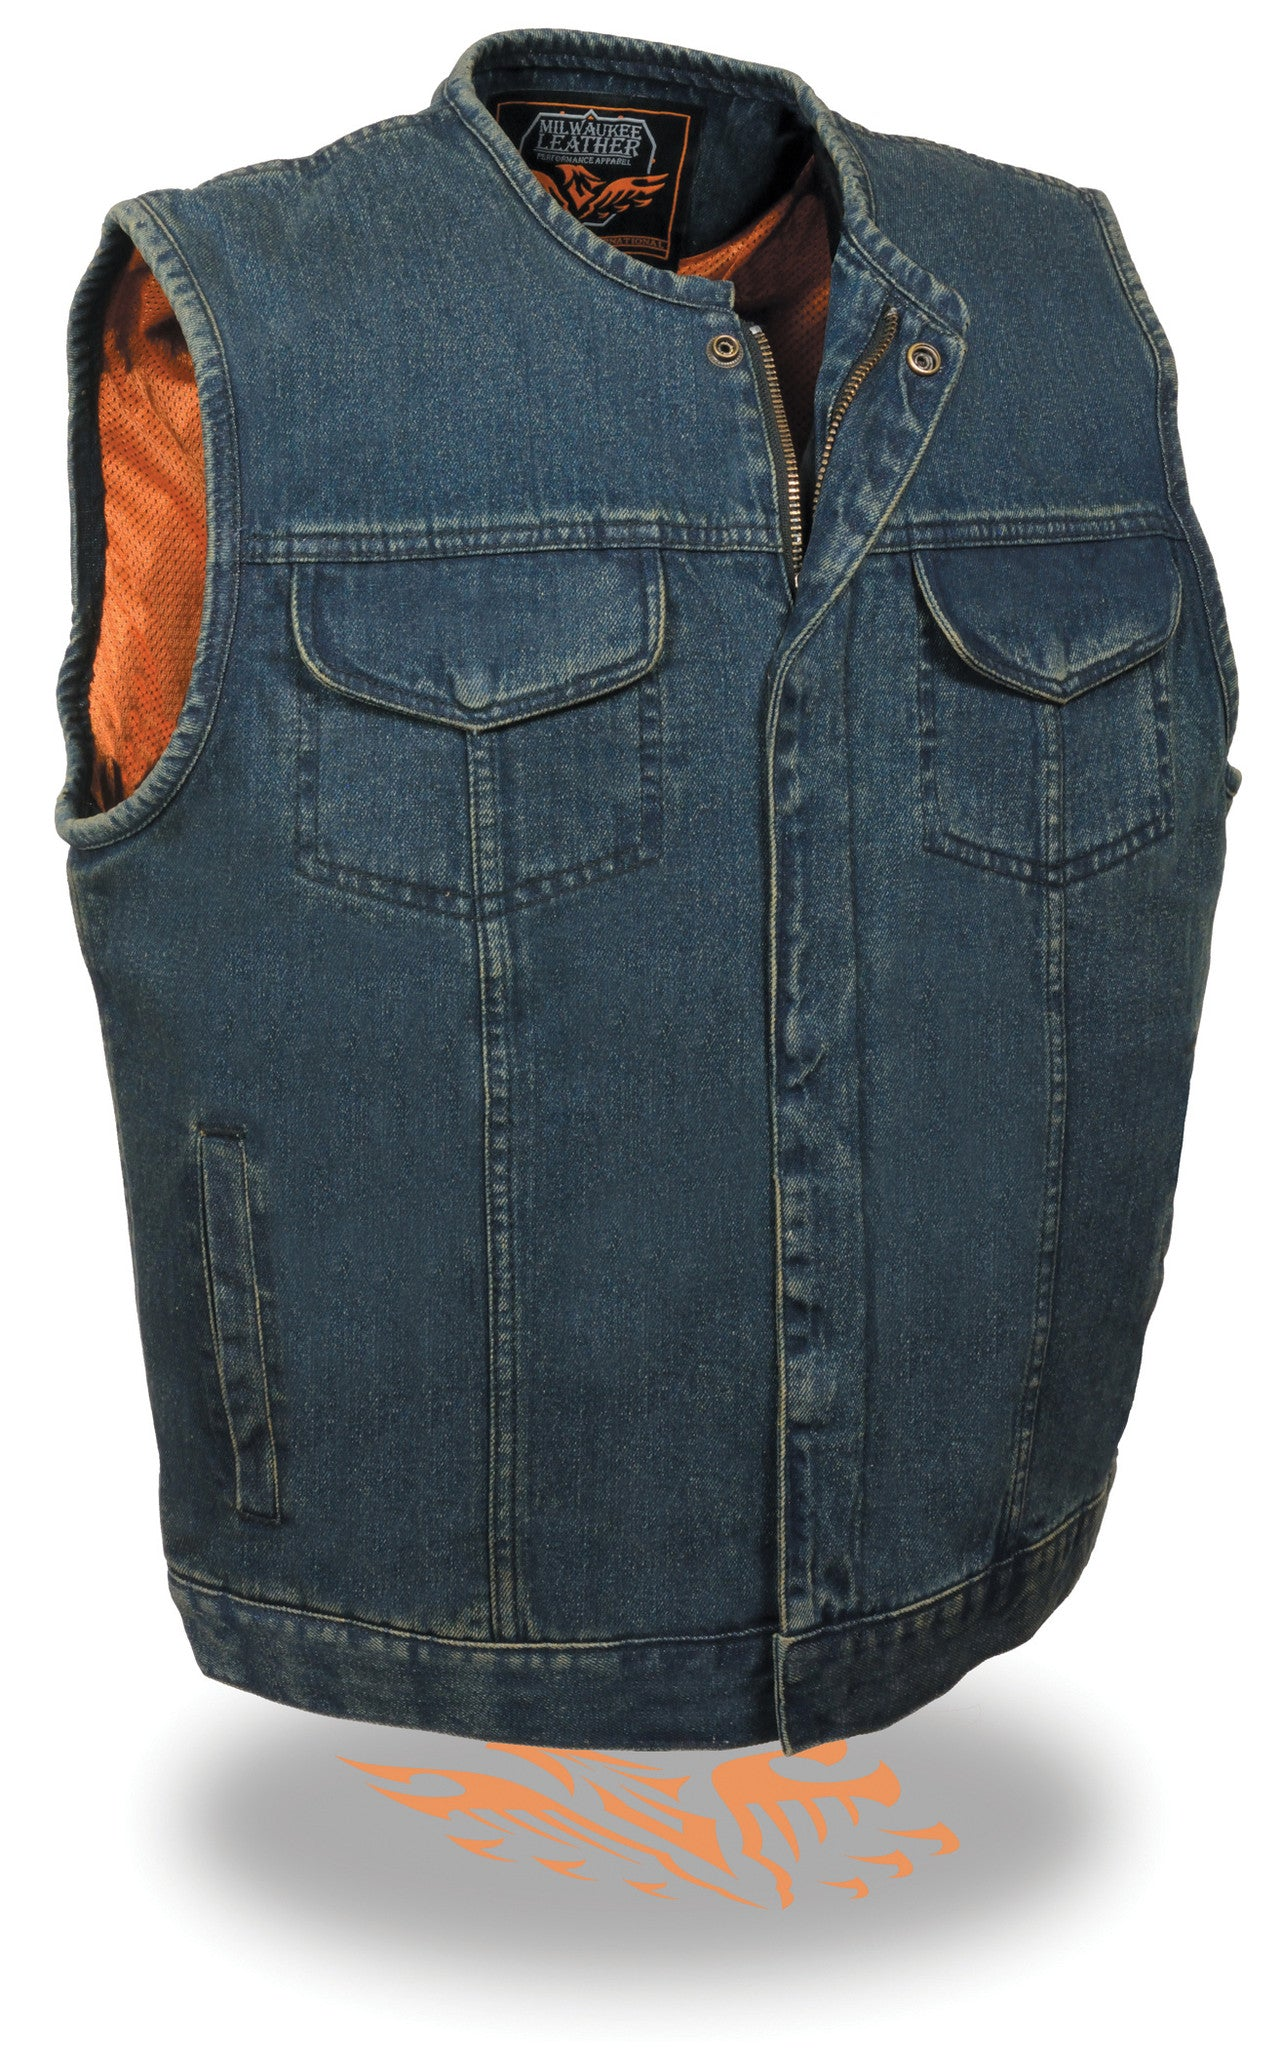 MEN'S BLUE DENIM VEST GUN POCKET INSIDE W ZIPPER